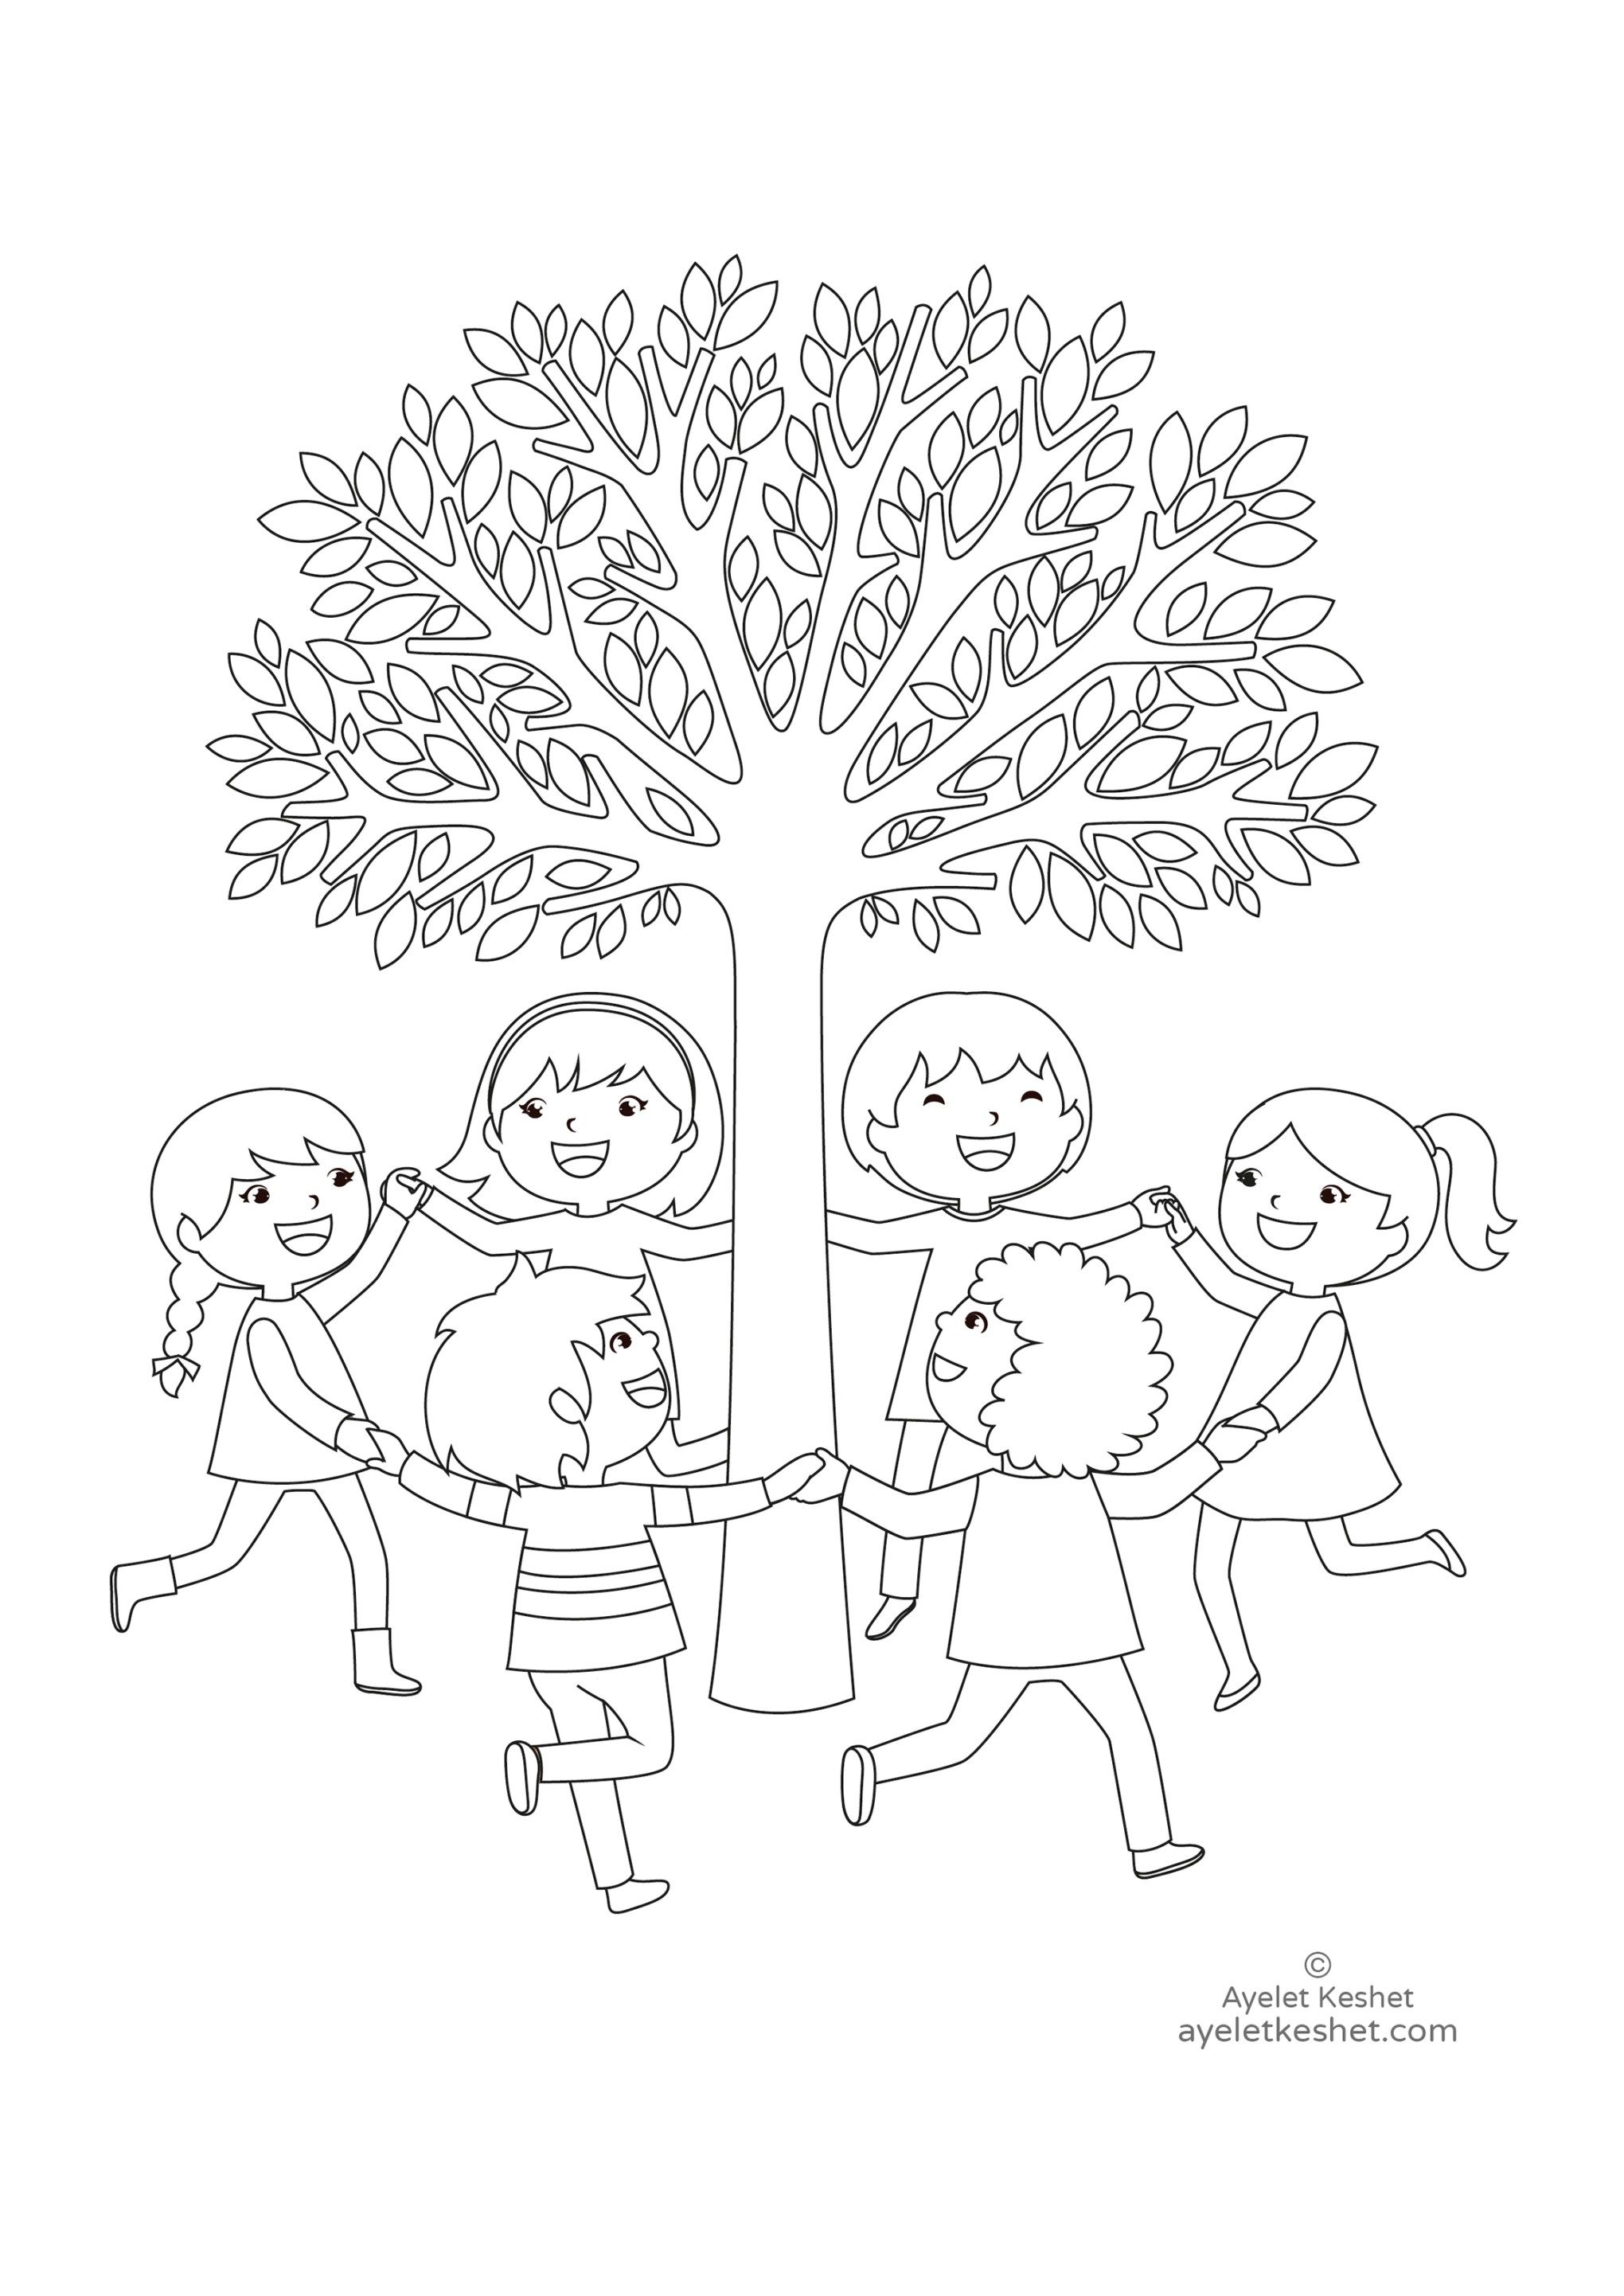 kids dancing coloring pages | Free coloring pages about friendship | Preschool coloring ...